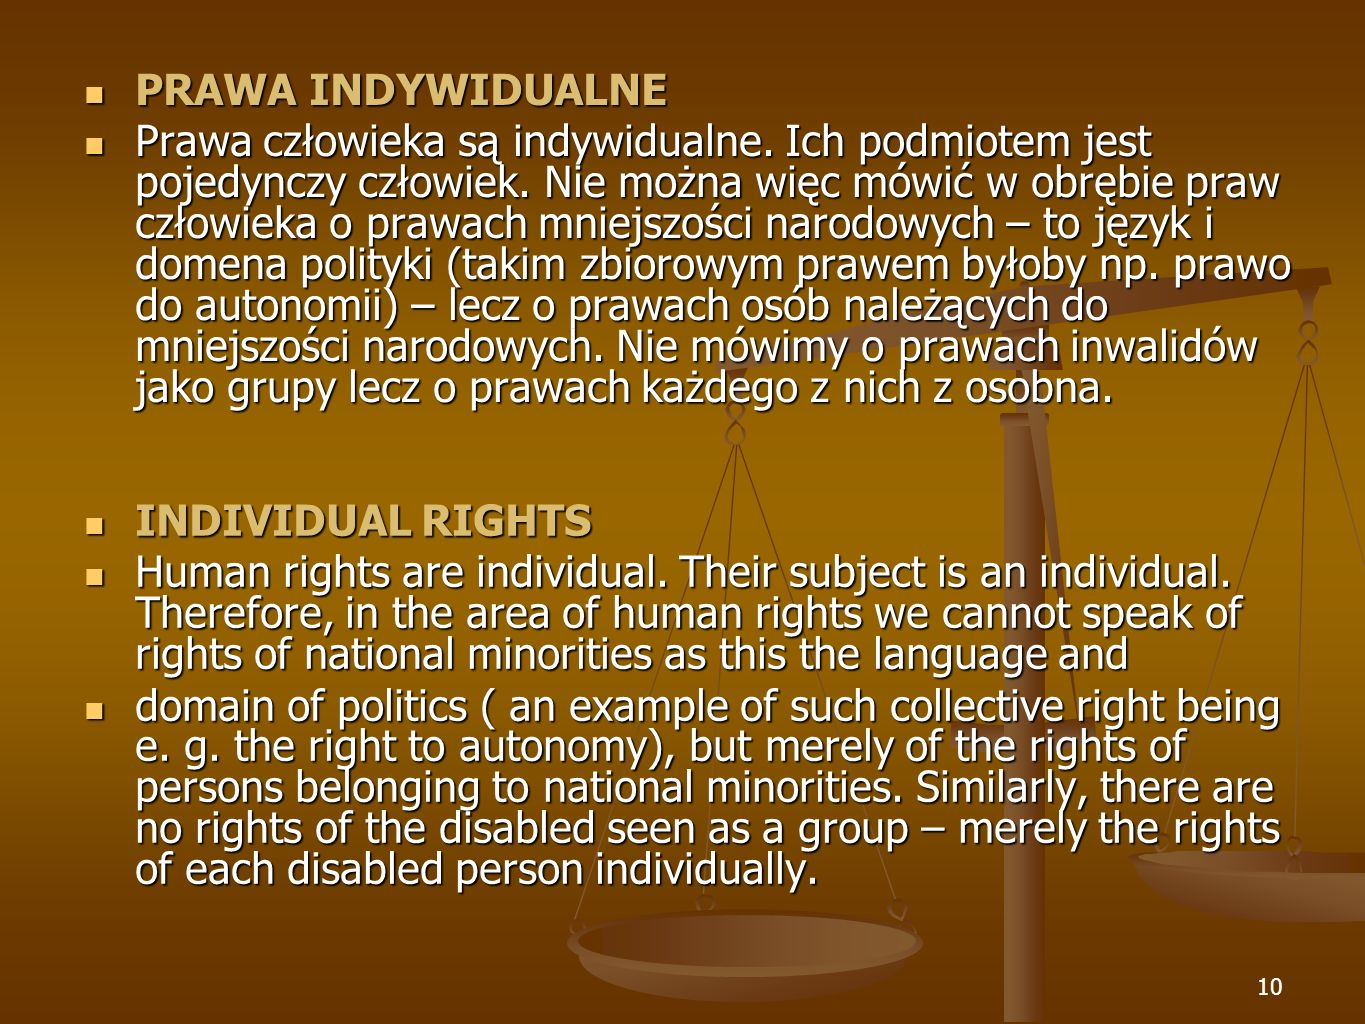 10 INDIVIDUAL RIGHTS INDIVIDUAL RIGHTS Human rights are individual. Their subject is an individual. Therefore, in the area of human rights we cannot s